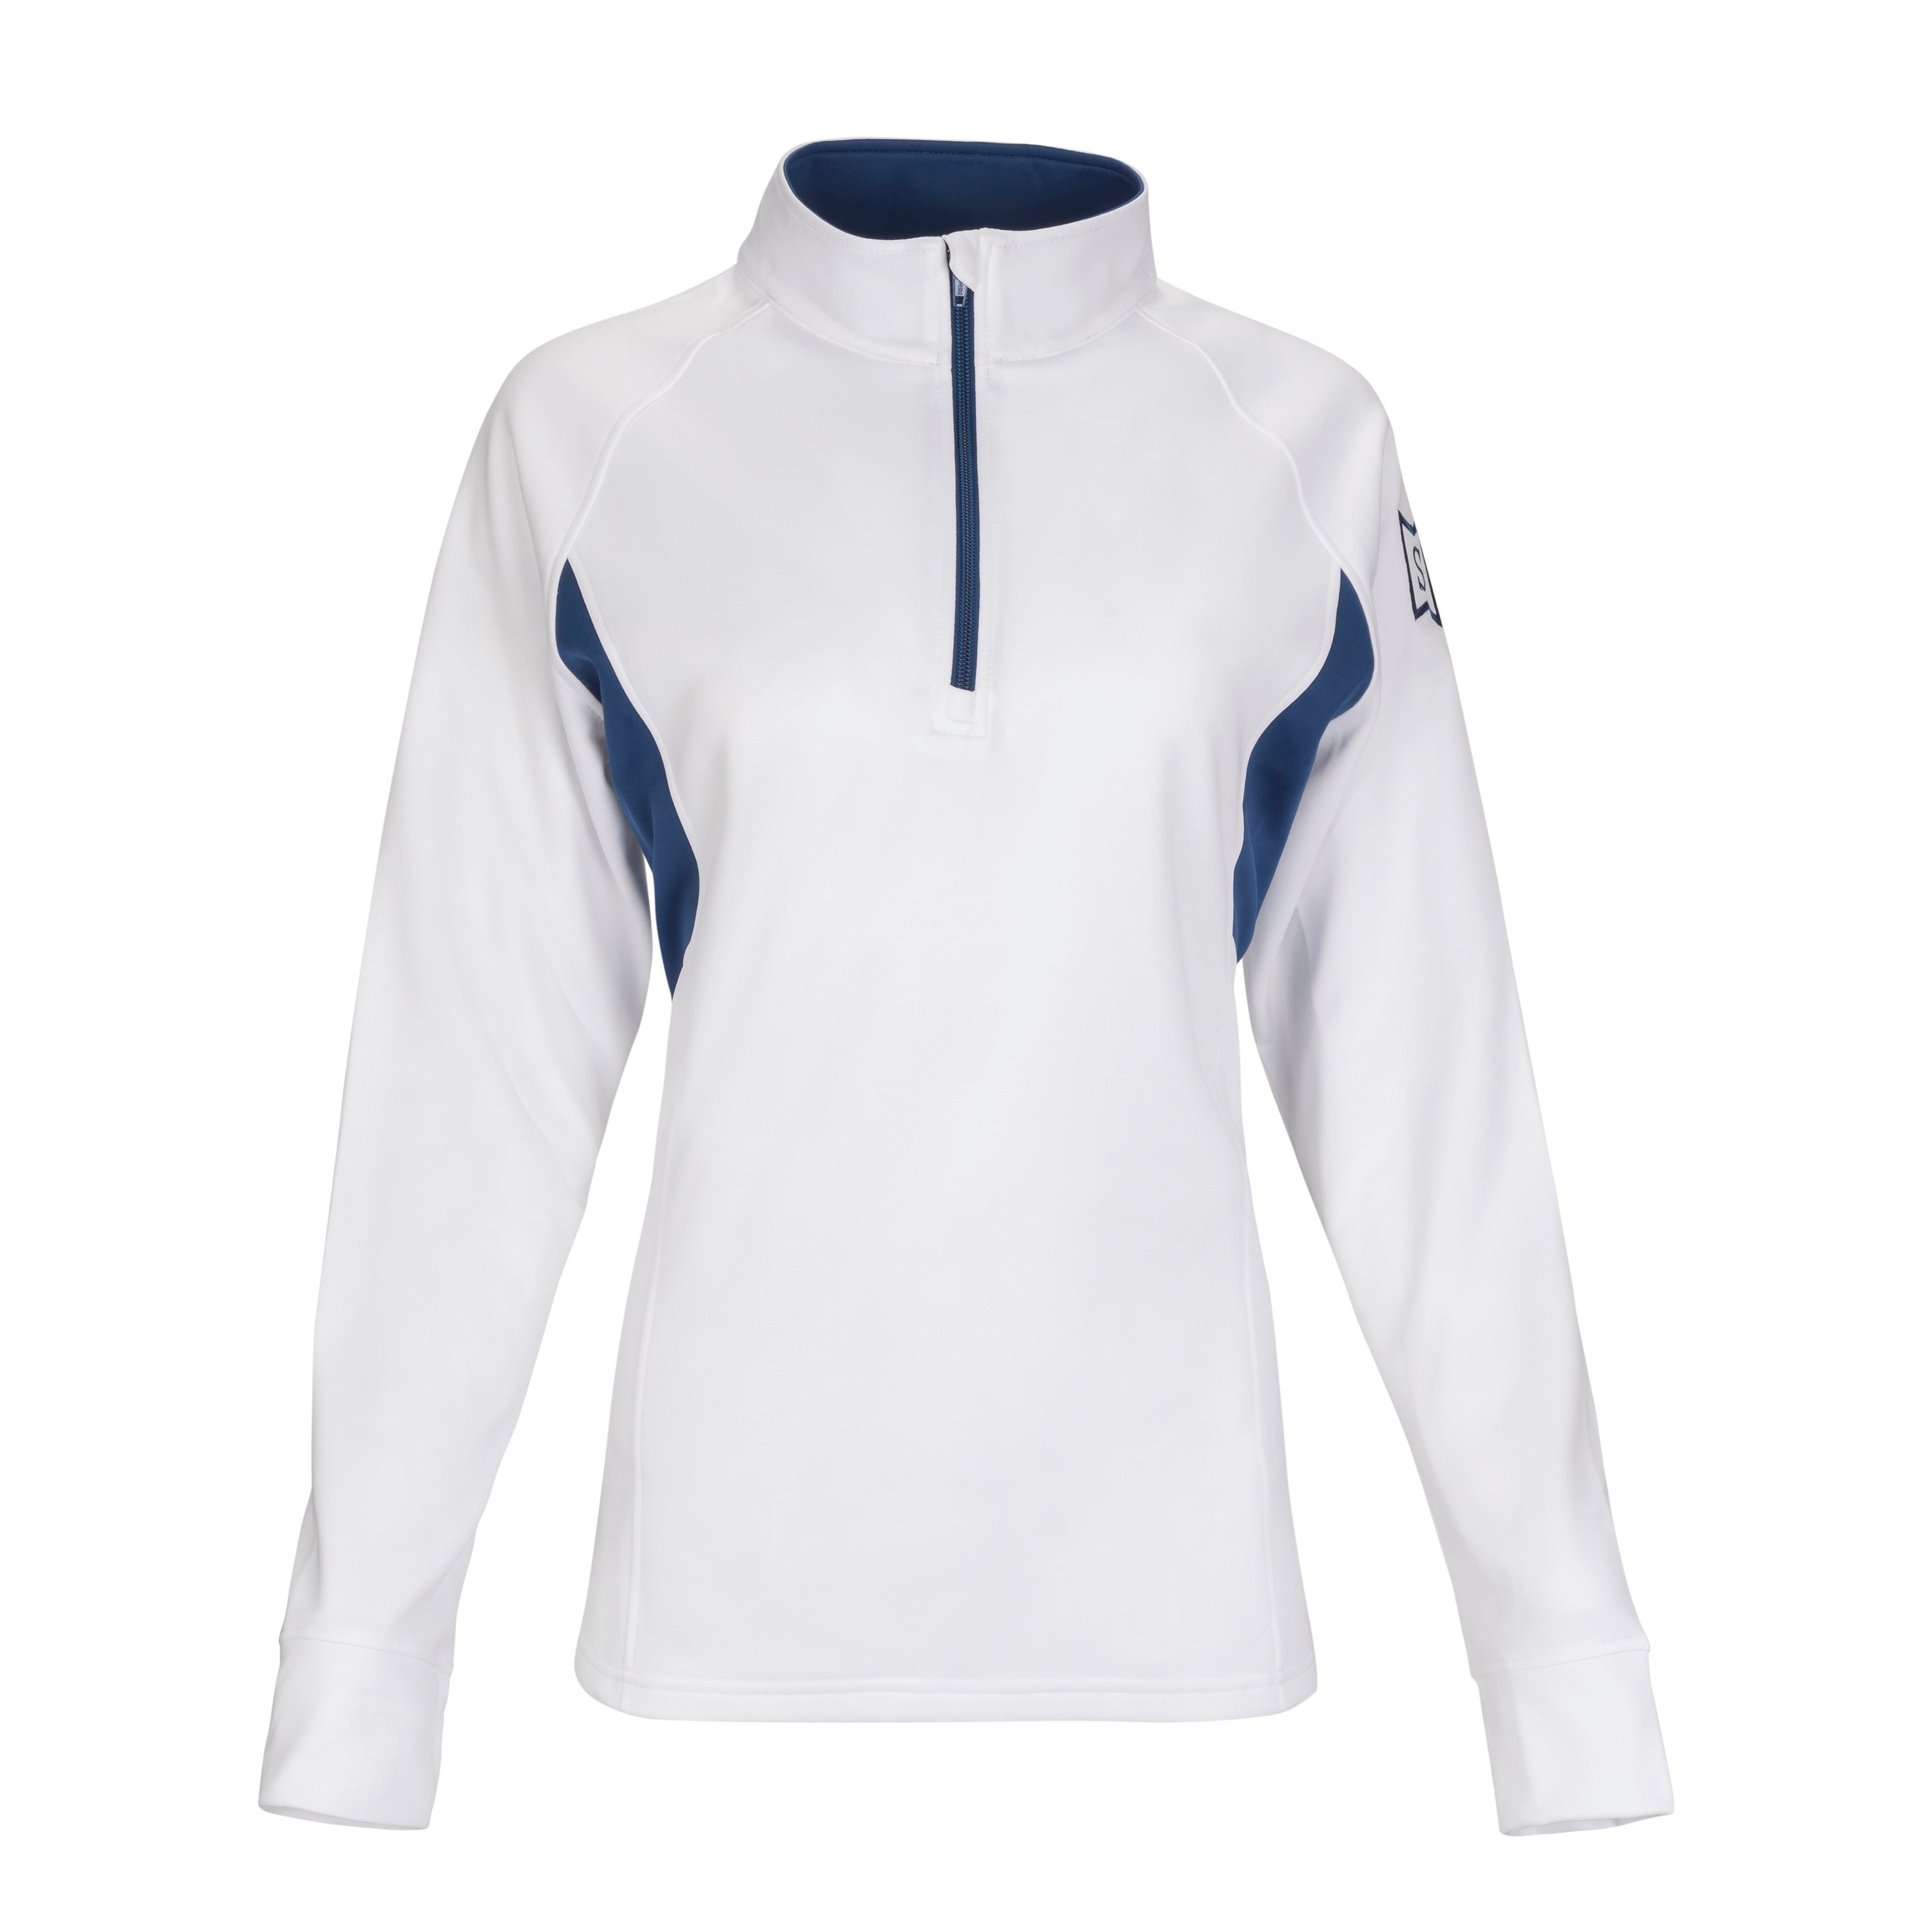 Ace Performance Heat Half-Zip White